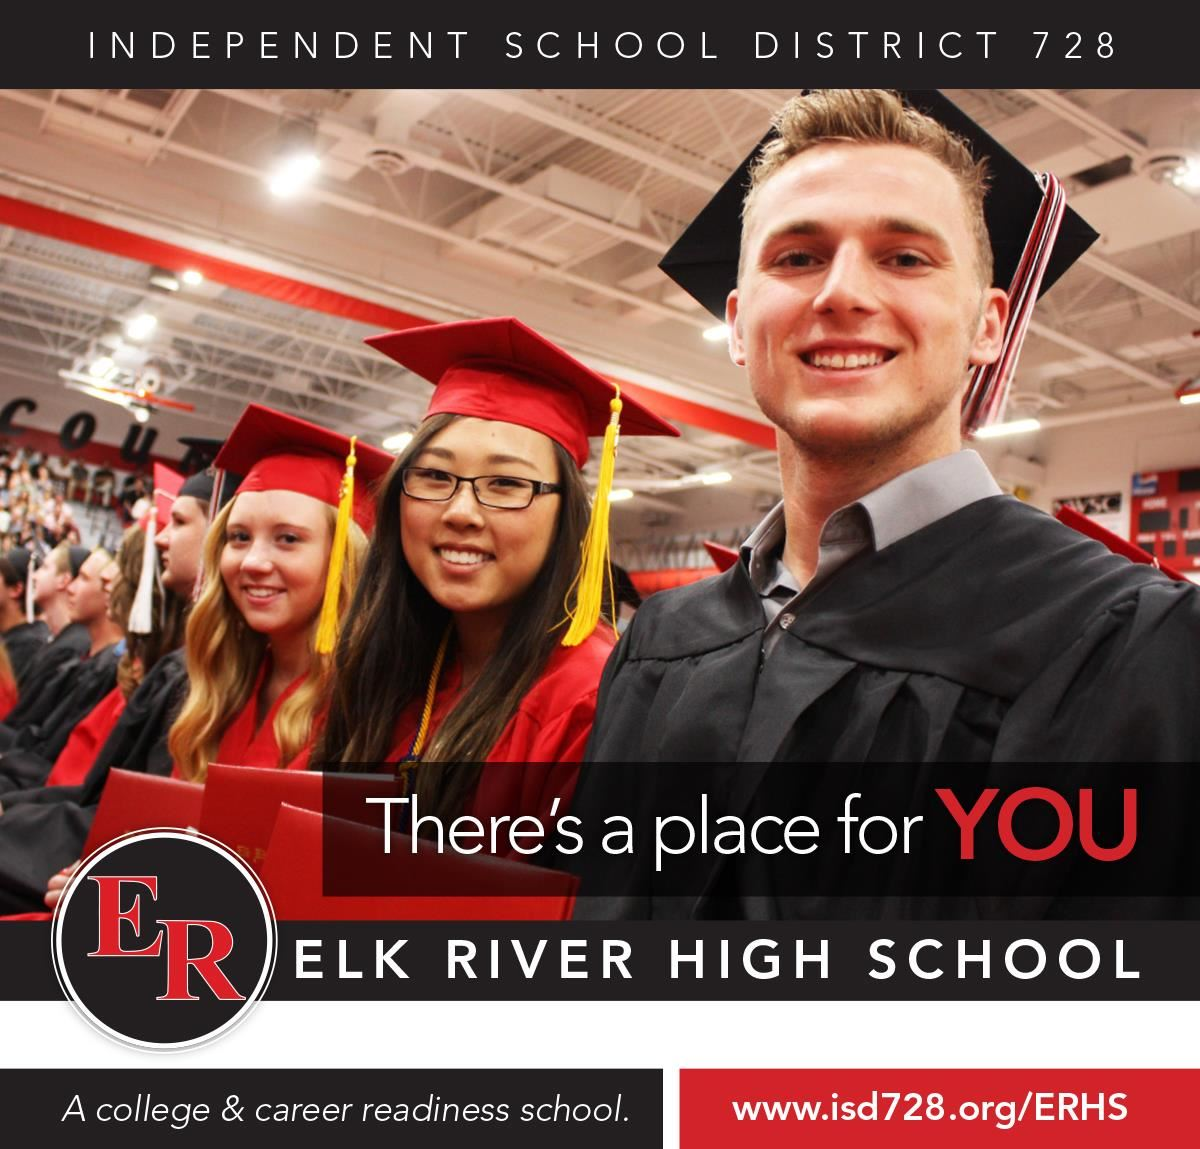 Elk River High School